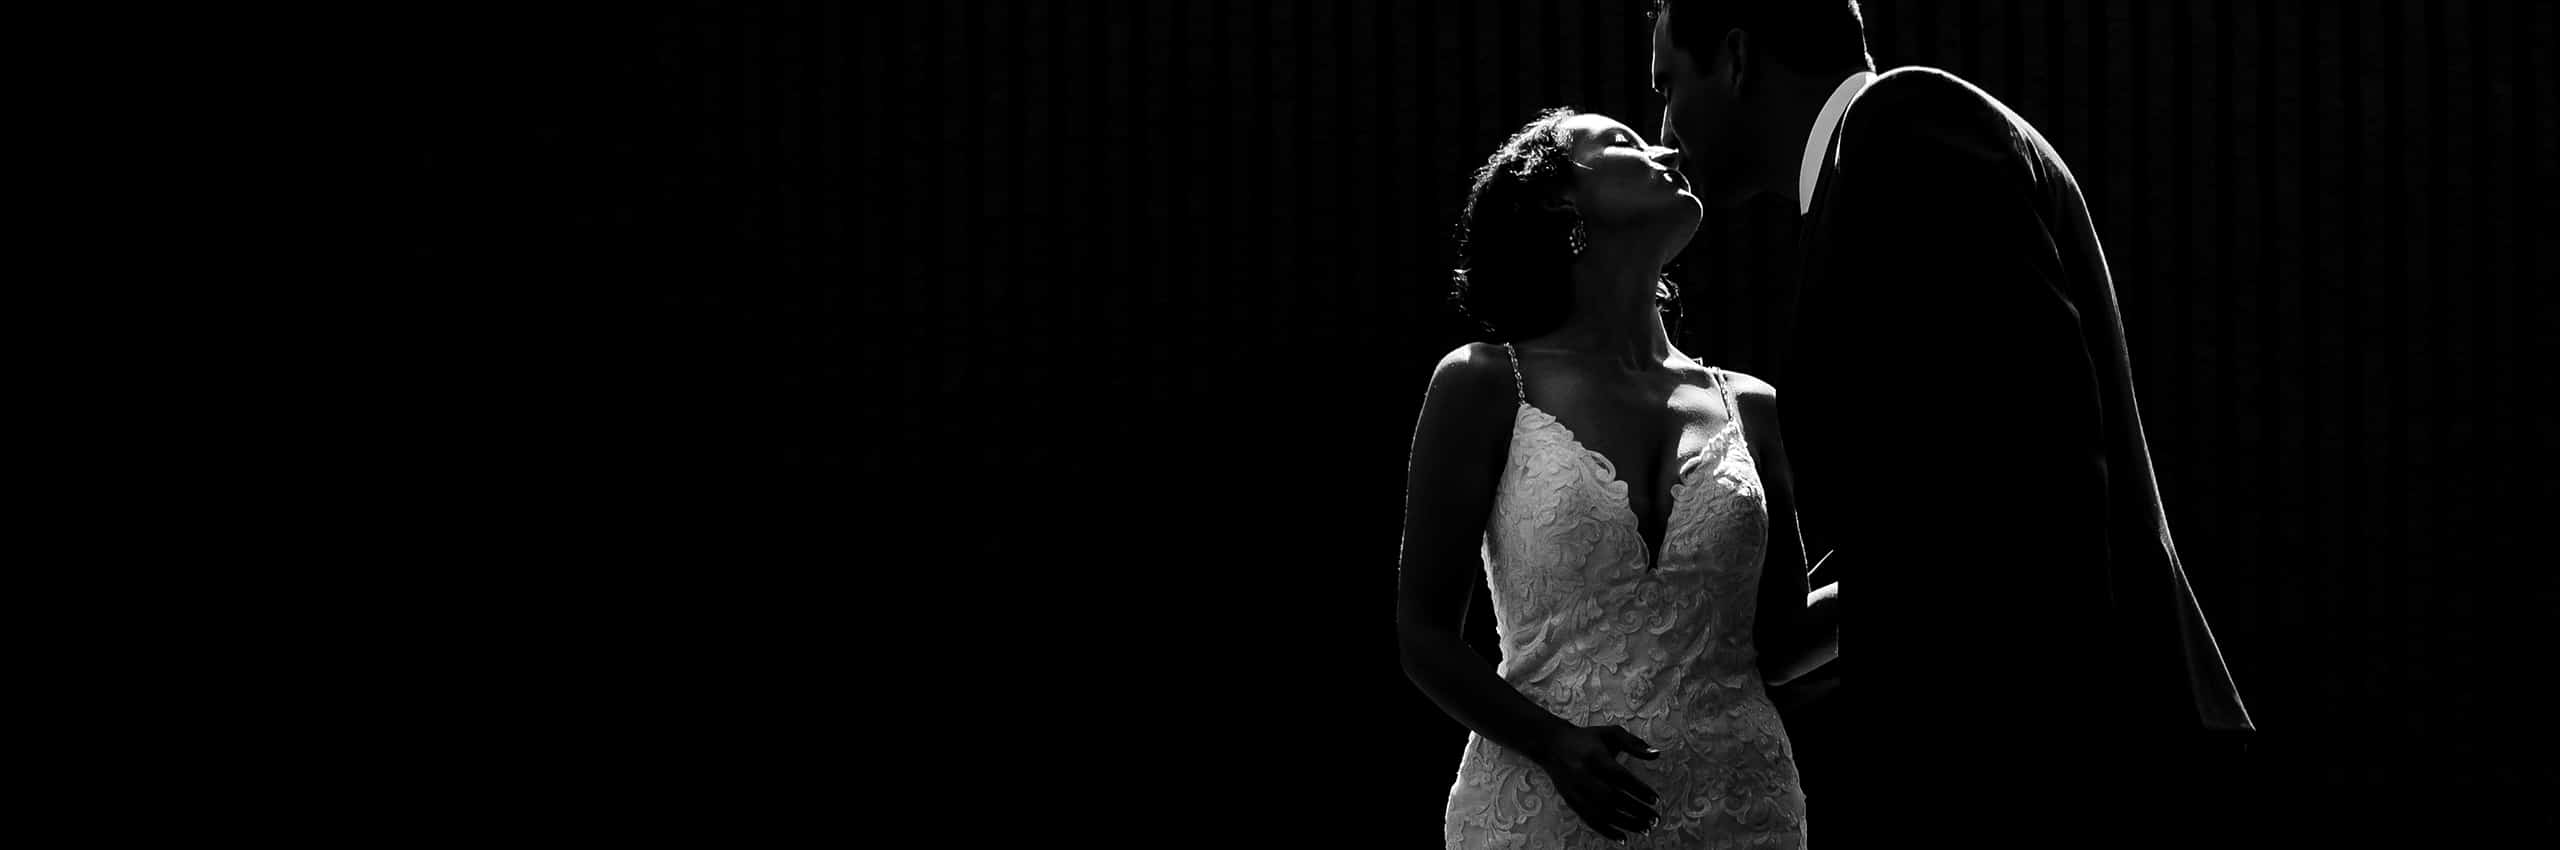 A bold black and white candid picture of a groom leaning down to kiss his bride, the outlines of their bodies lit by sunlight.